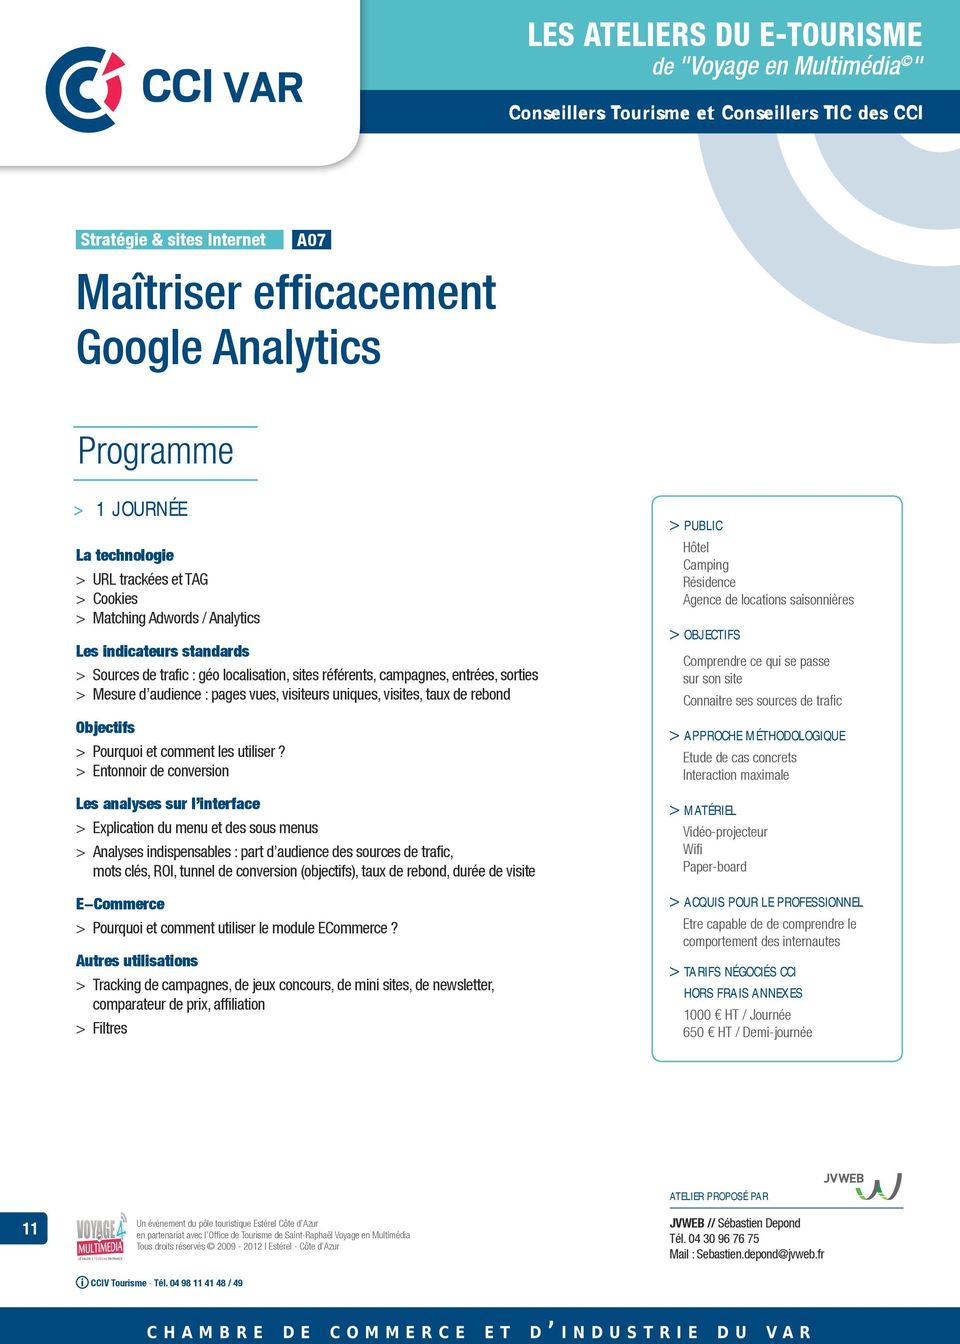 > > Entonnoir de conversion Les analyses sur l interface > > Explication du menu et des sous menus > > Analyses indispensables : part d audience des sources de trafic, mots clés, ROI, tunnel de